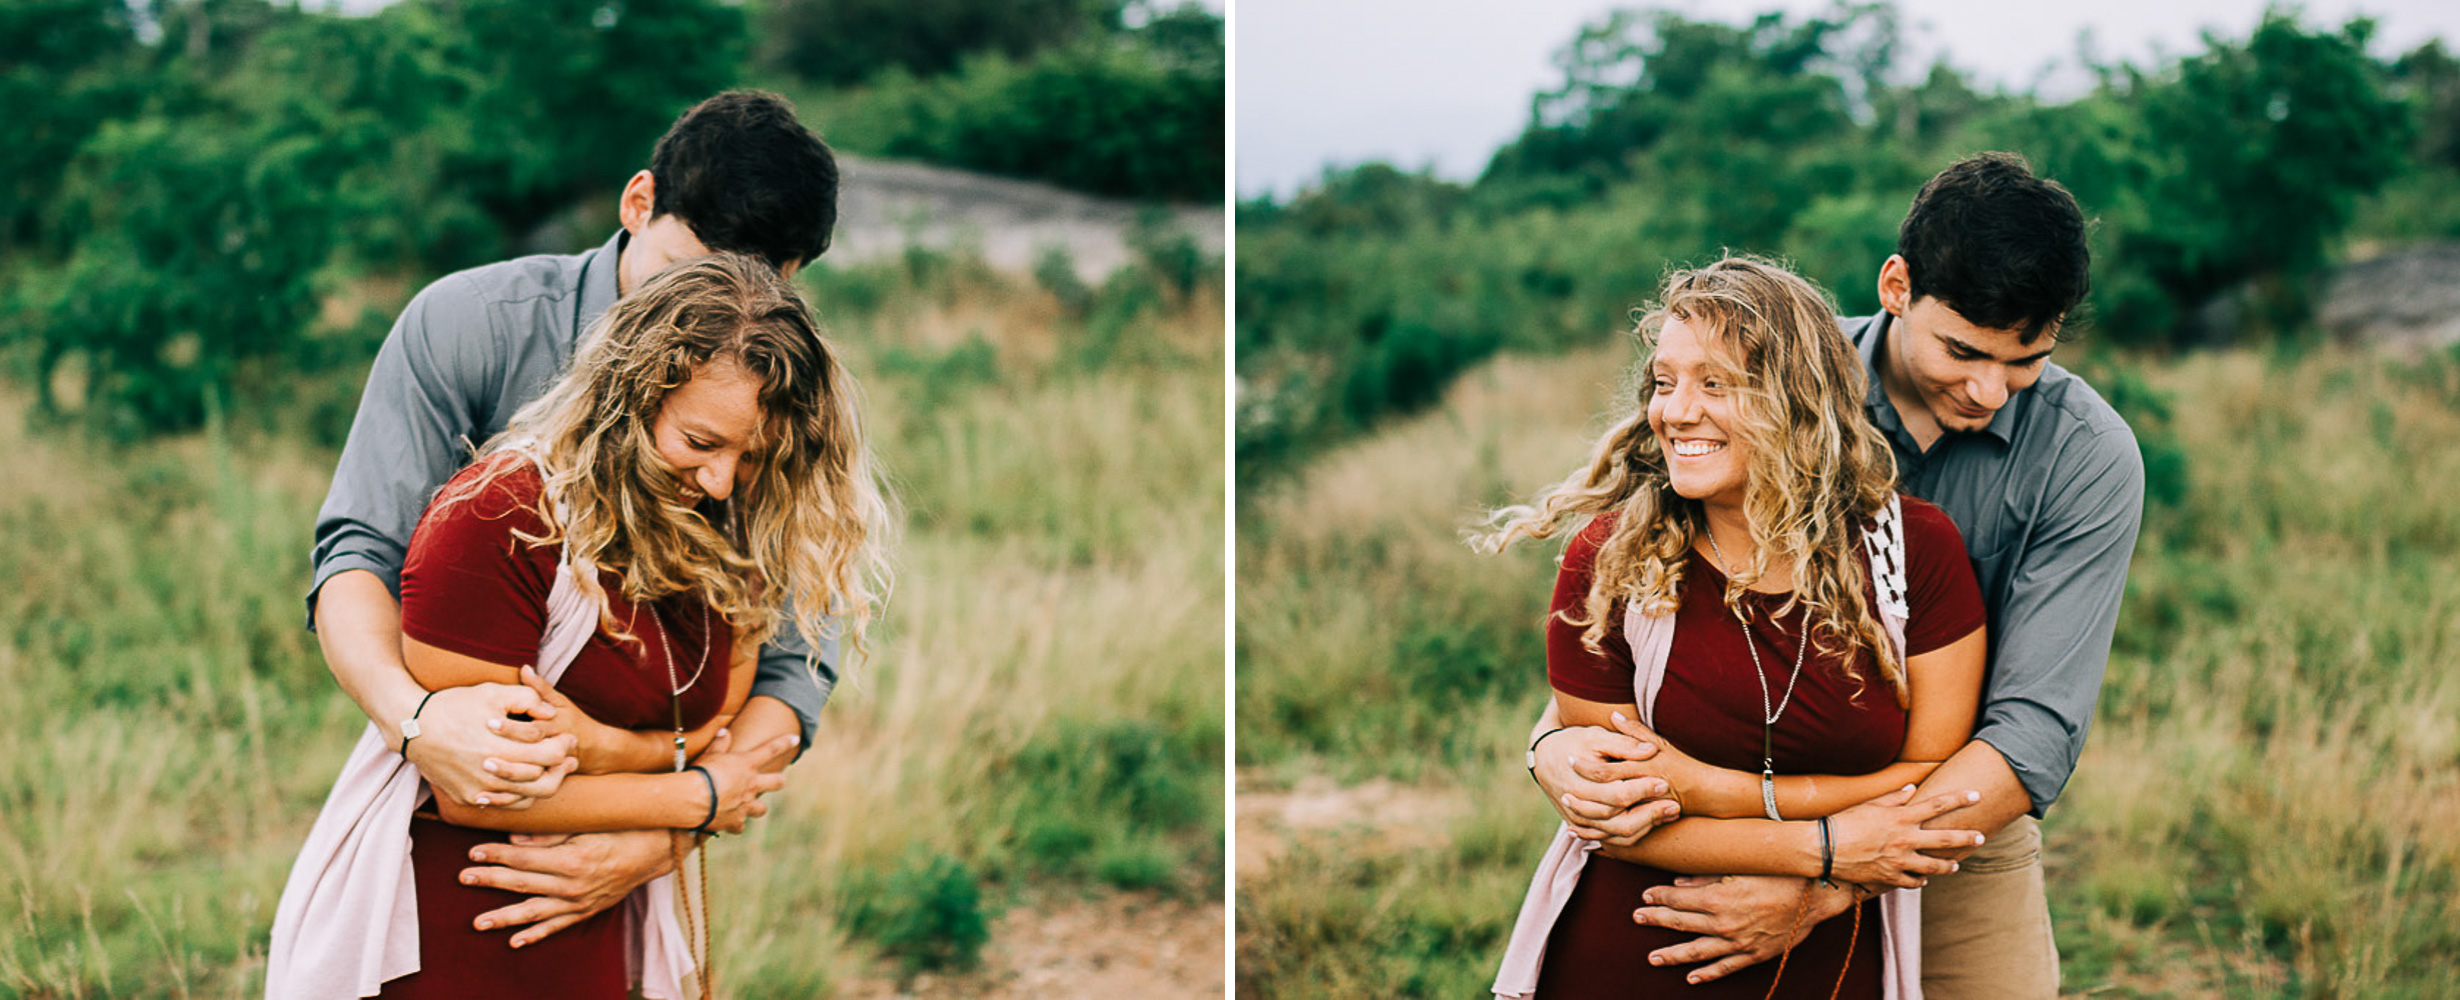 Mountain Engagement, Summer Engaement, Engaged, Engaement Portriats, Engagement Pictures, 17.jpg